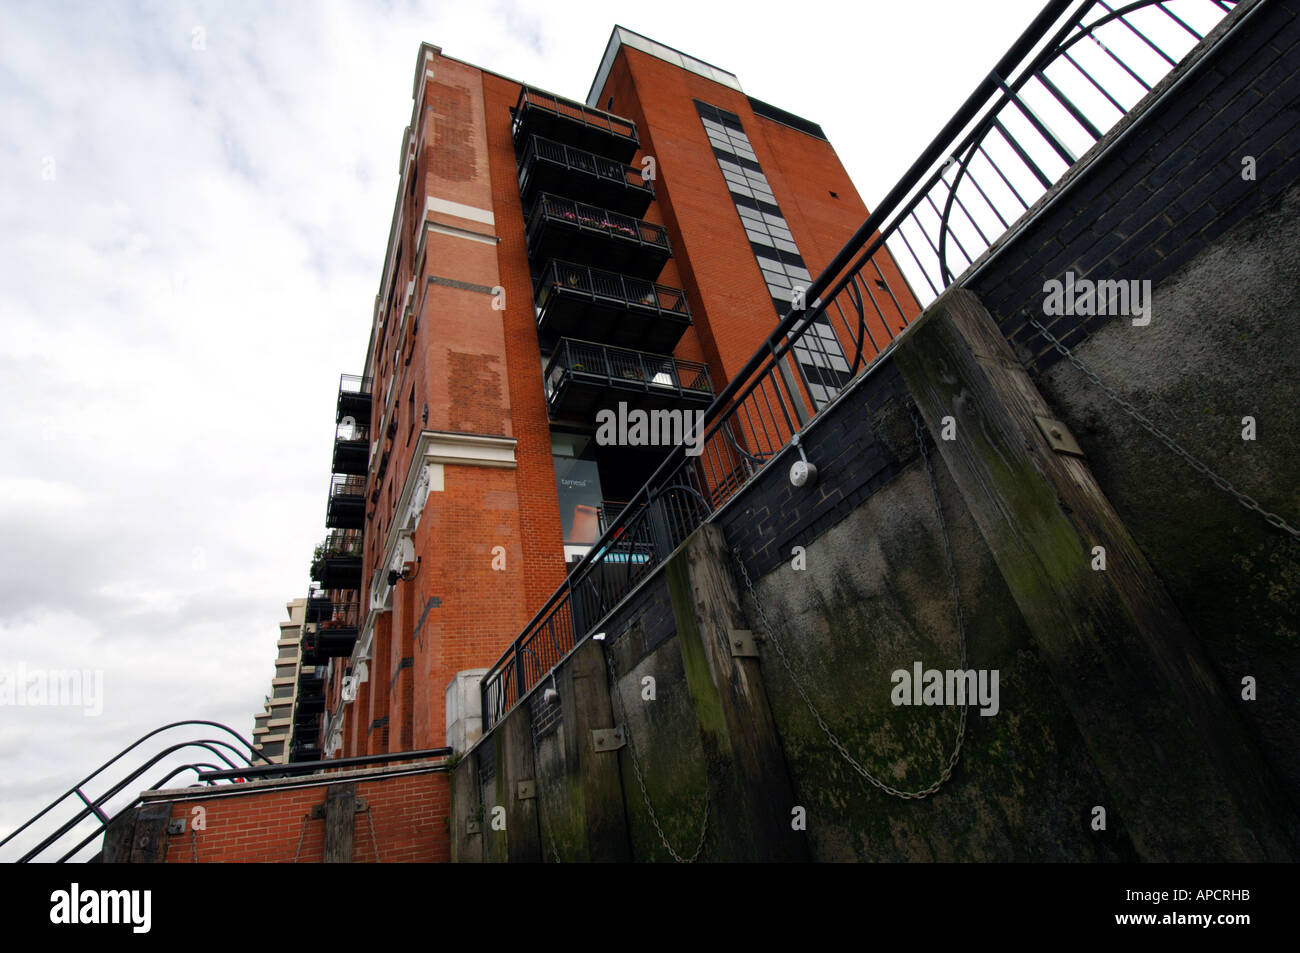 the oxo tower / buildings on the south bank of the river thames london england uk - Stock Image